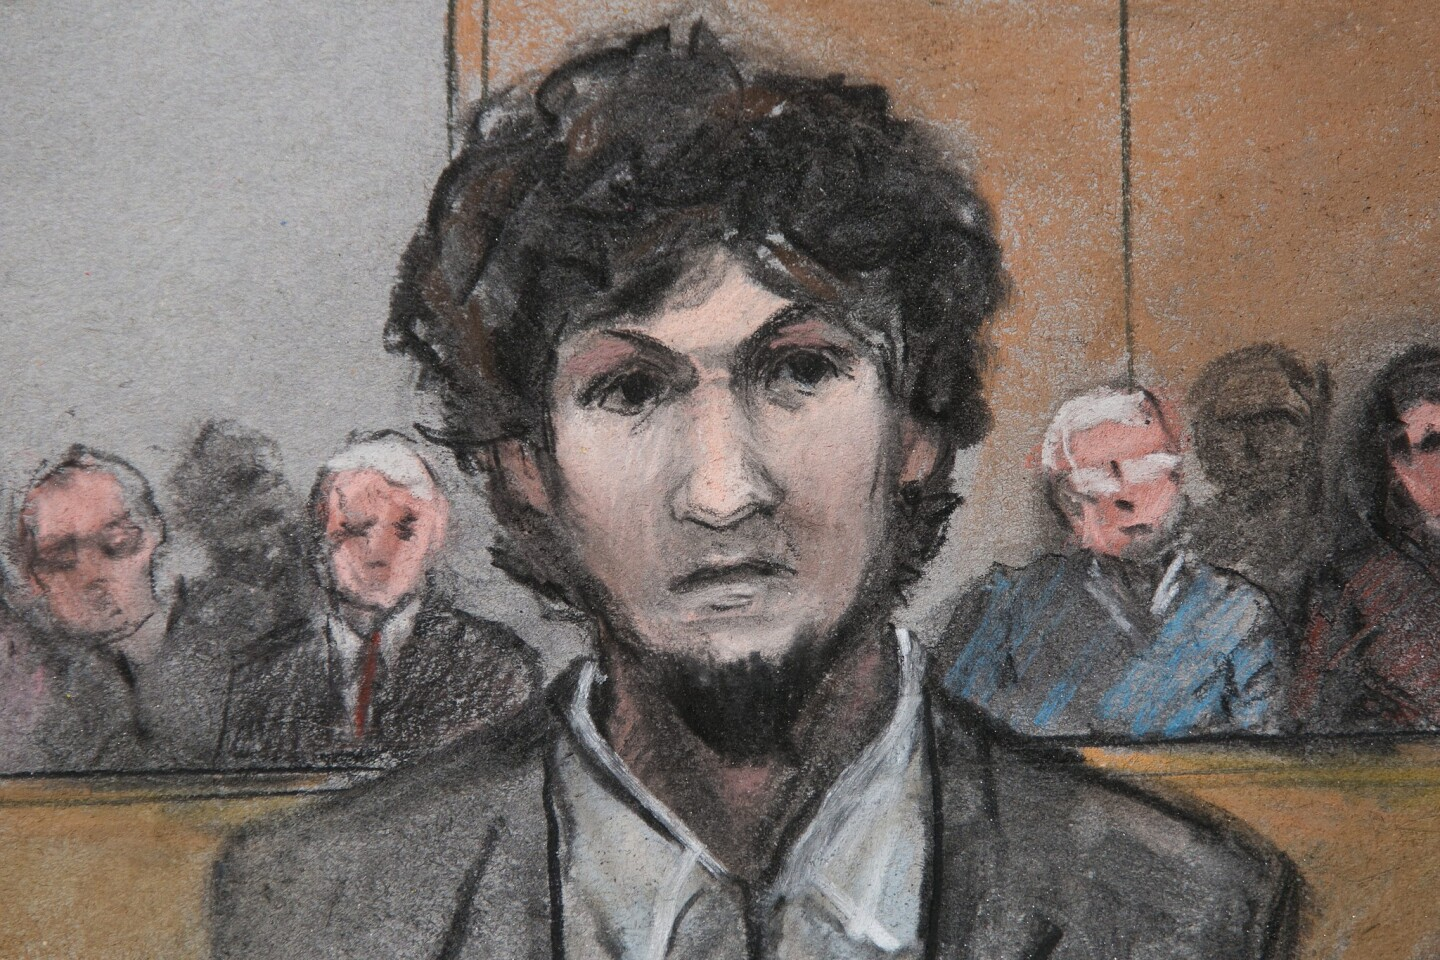 A somber-looking Dzokhar Tsarnaev stood with his hands folded, his head slightly bowed, as he learned his fate May 15, 2015.